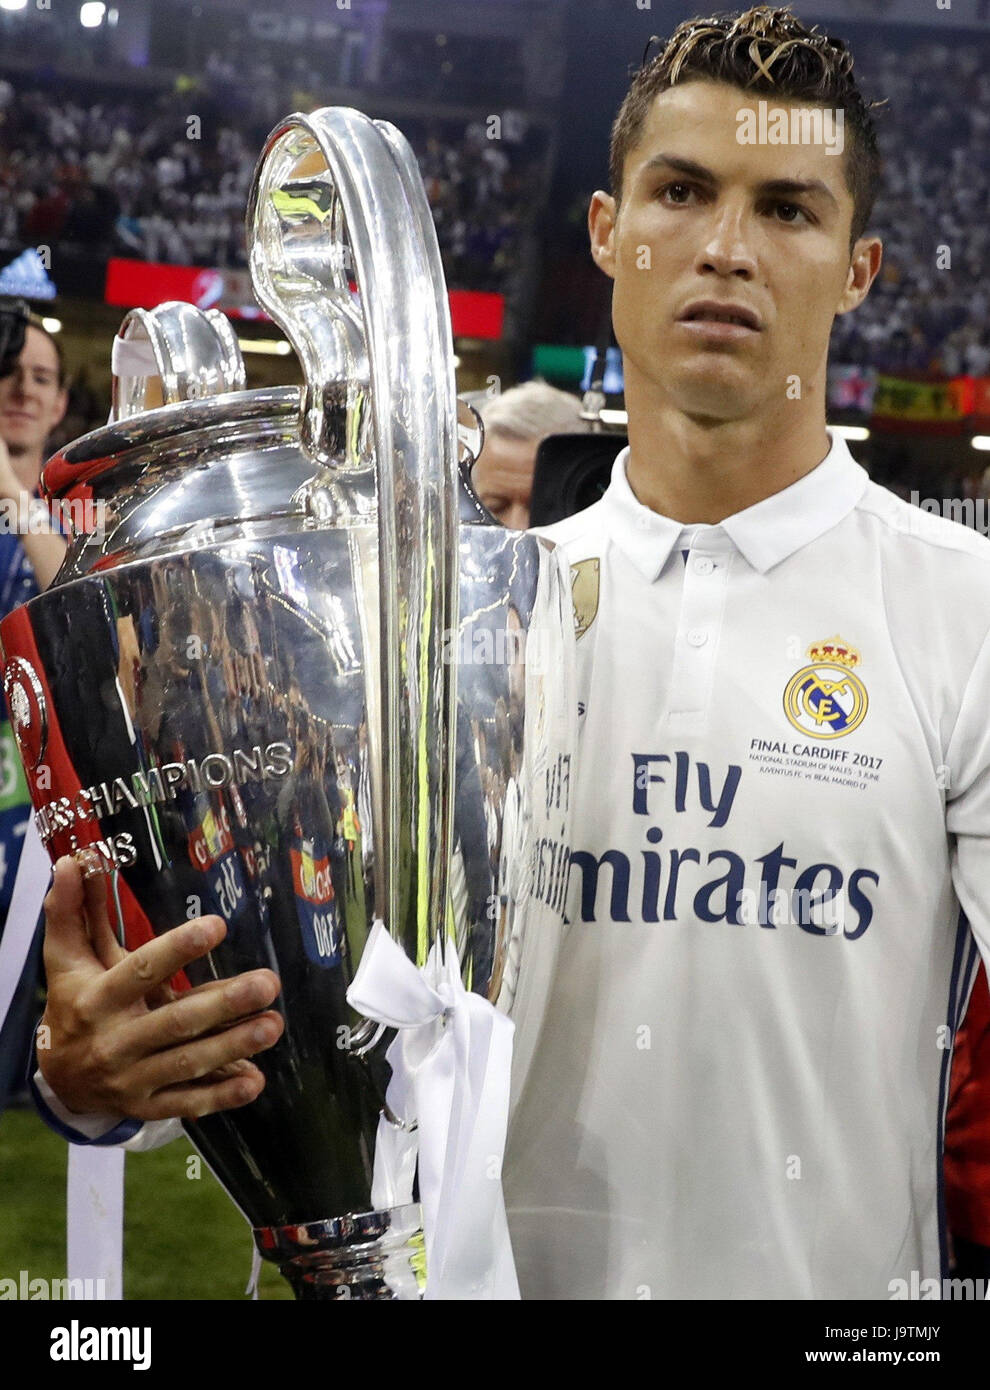 Real Madrids Cristiano Ronaldo Poses With The Trophy After UEFA Champions League Final Match Between Juventus And Madrid At Millenium Stadium